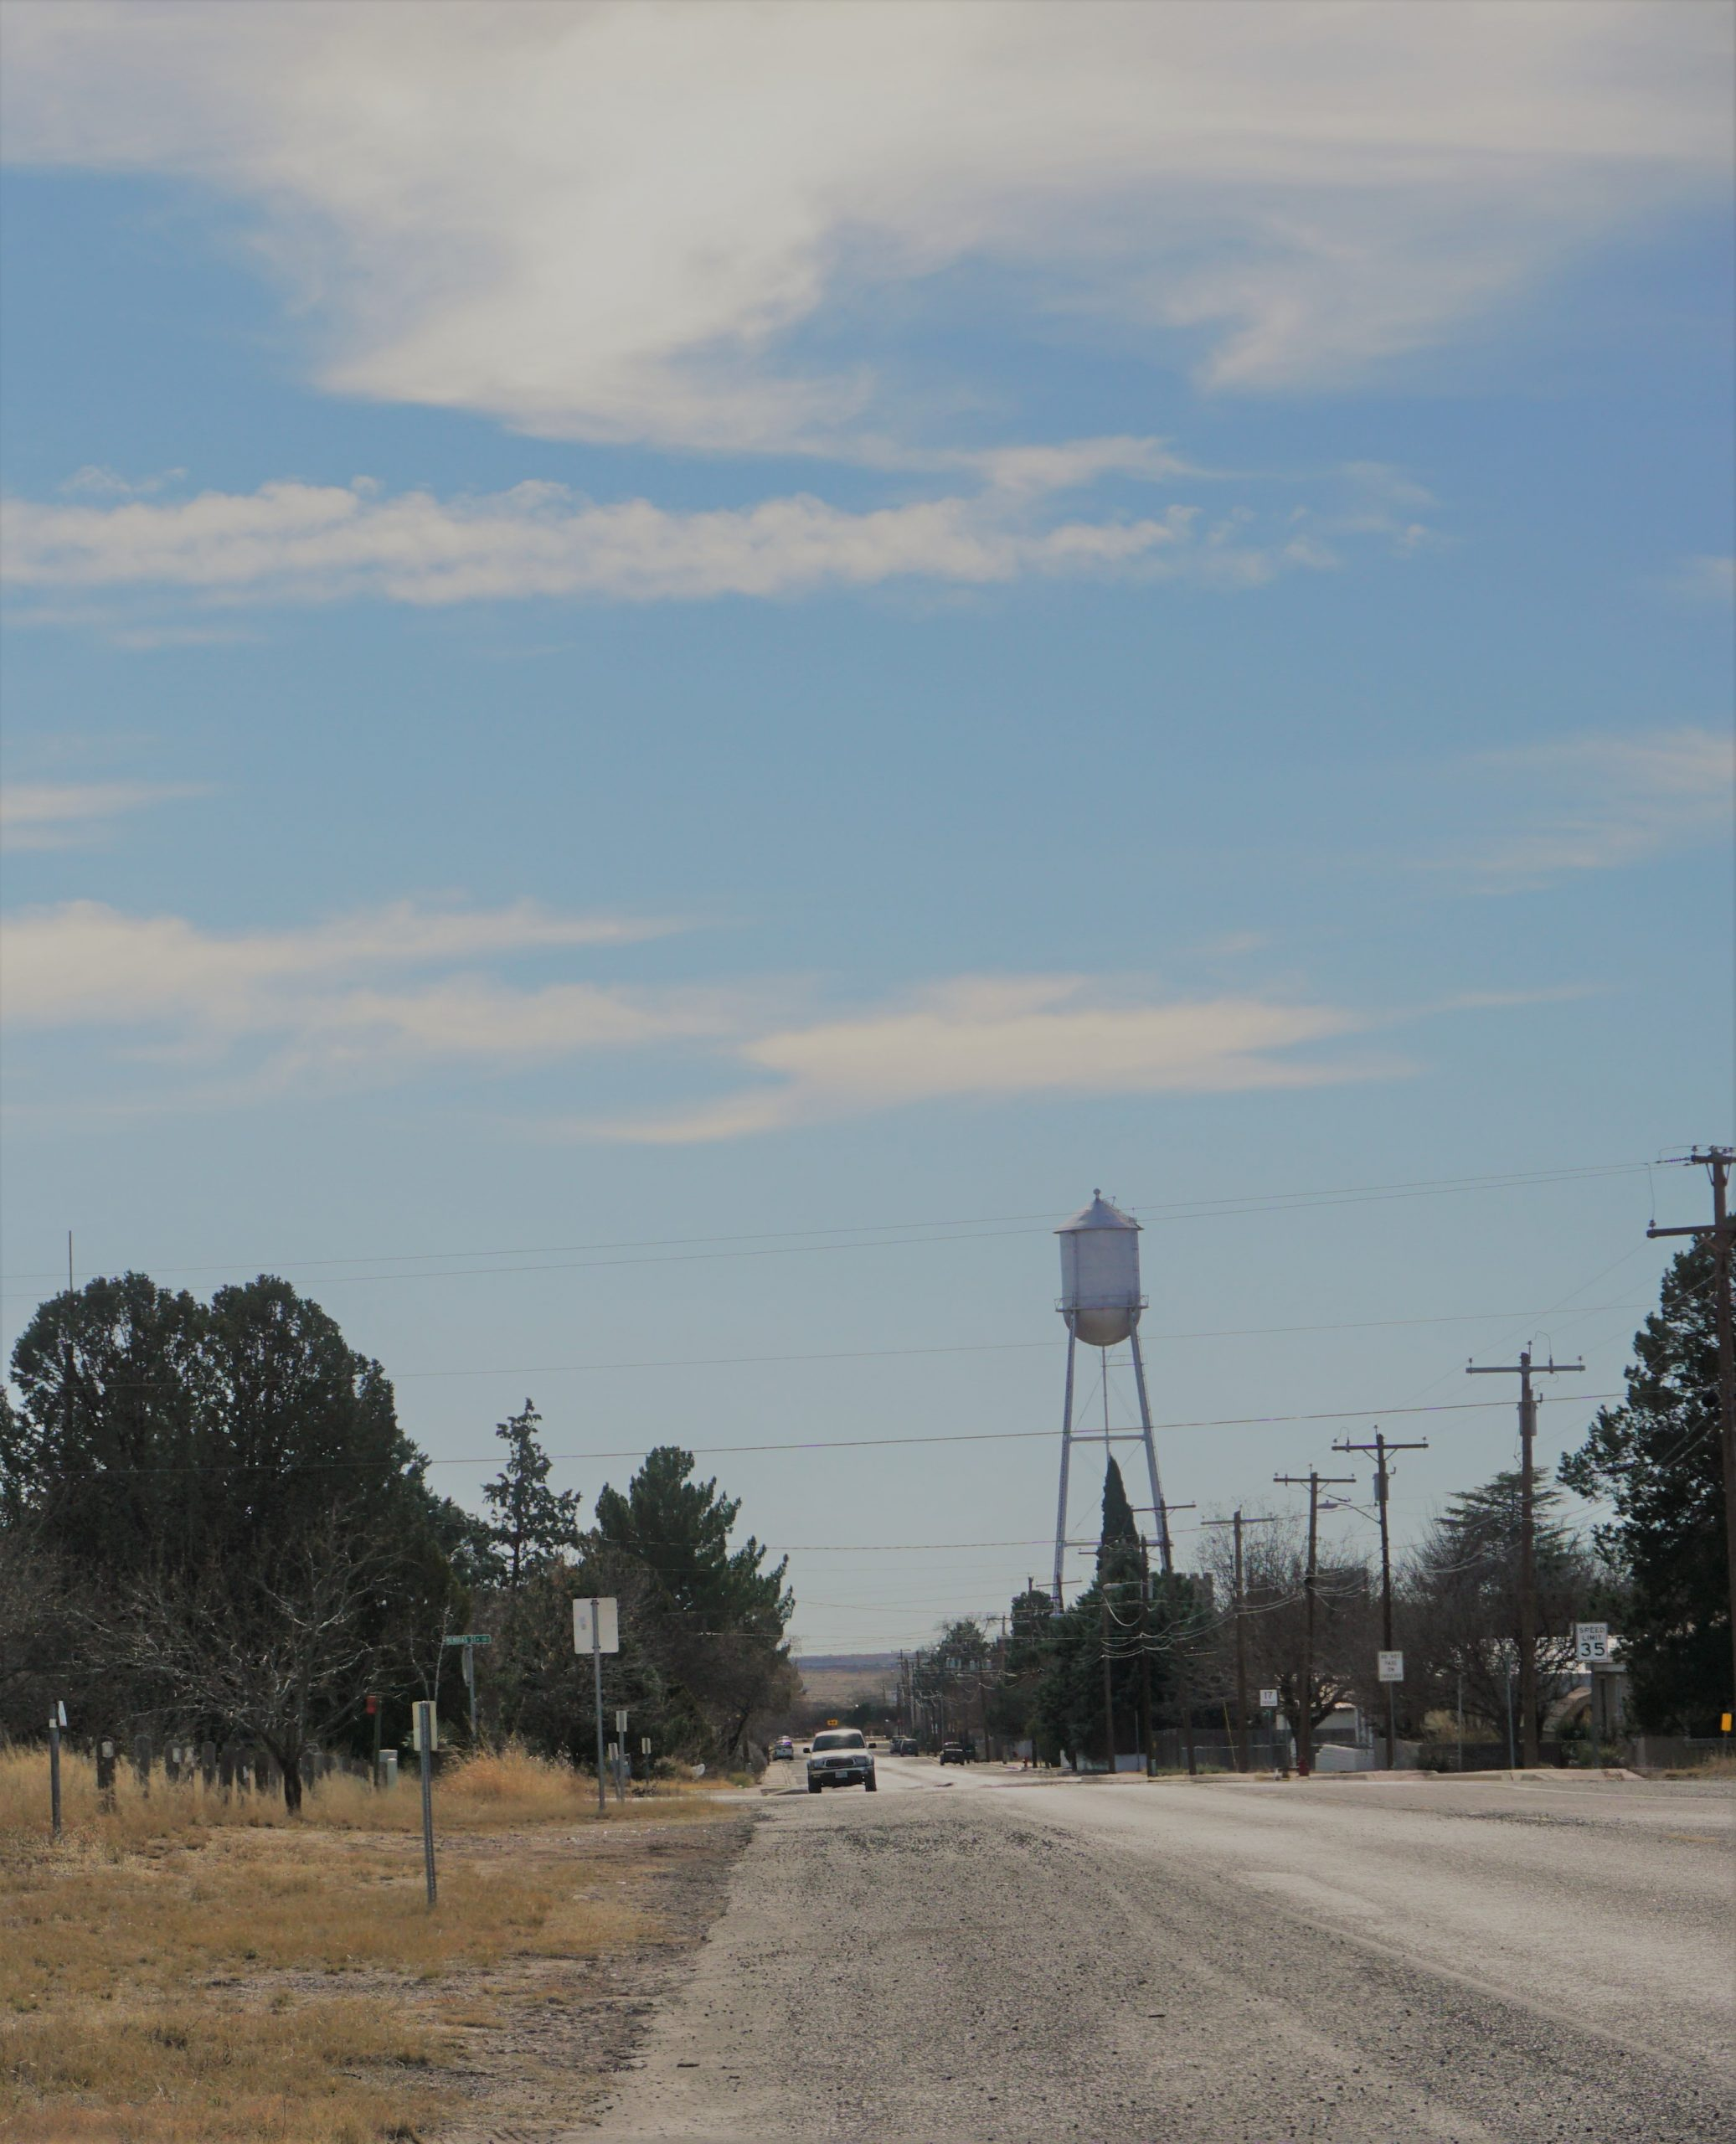 Marfa water tower seen from road